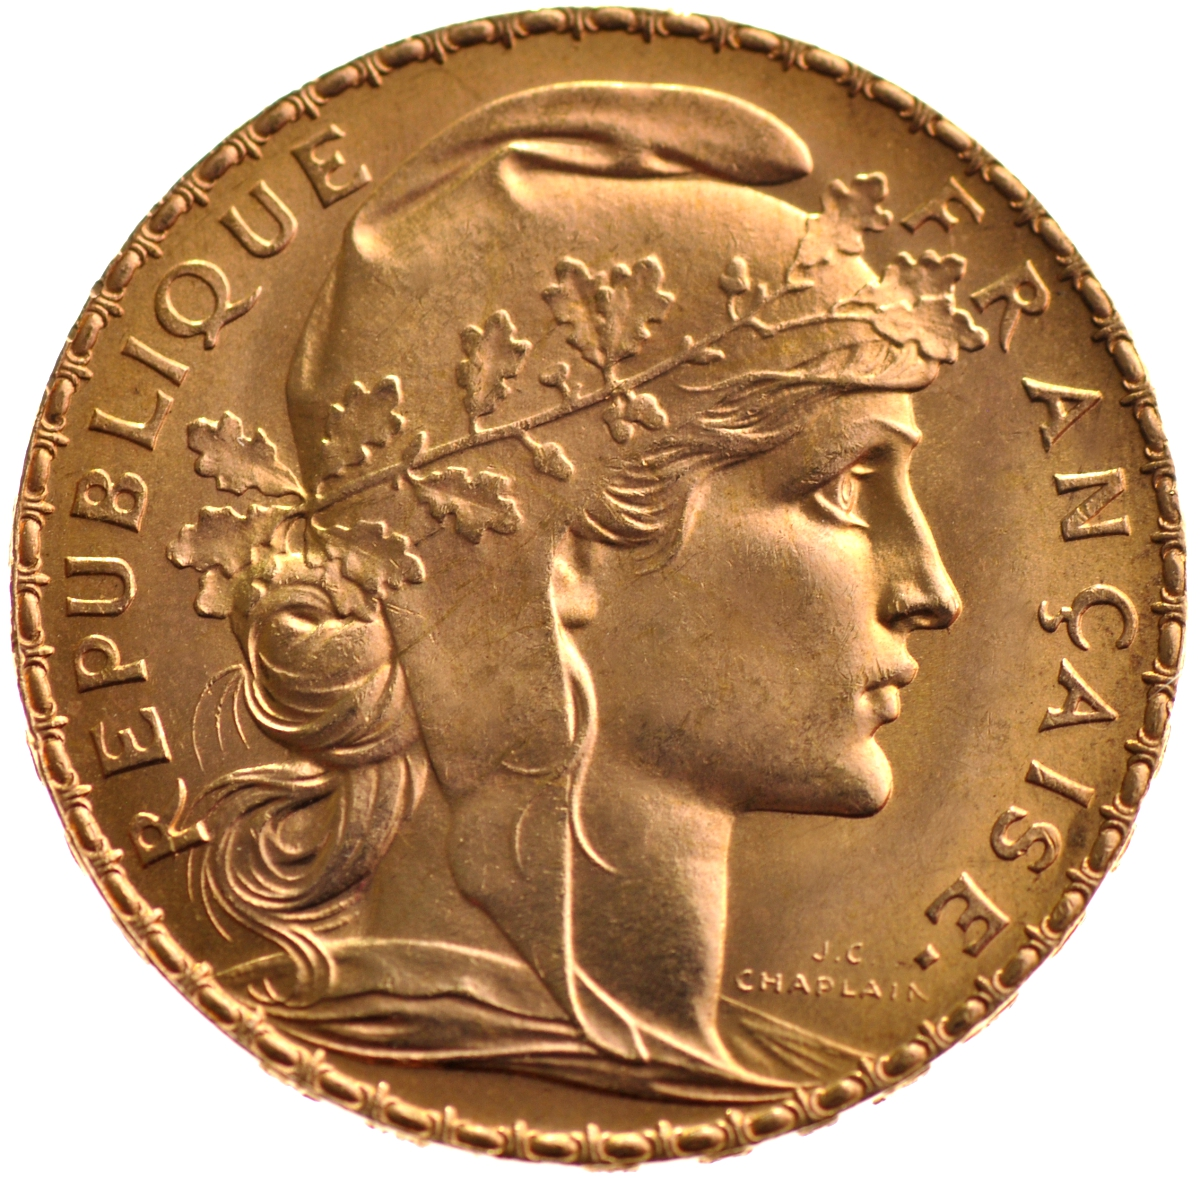 Buy Gold 20 French Franc Coin Bullionbypost 174 From 163 201